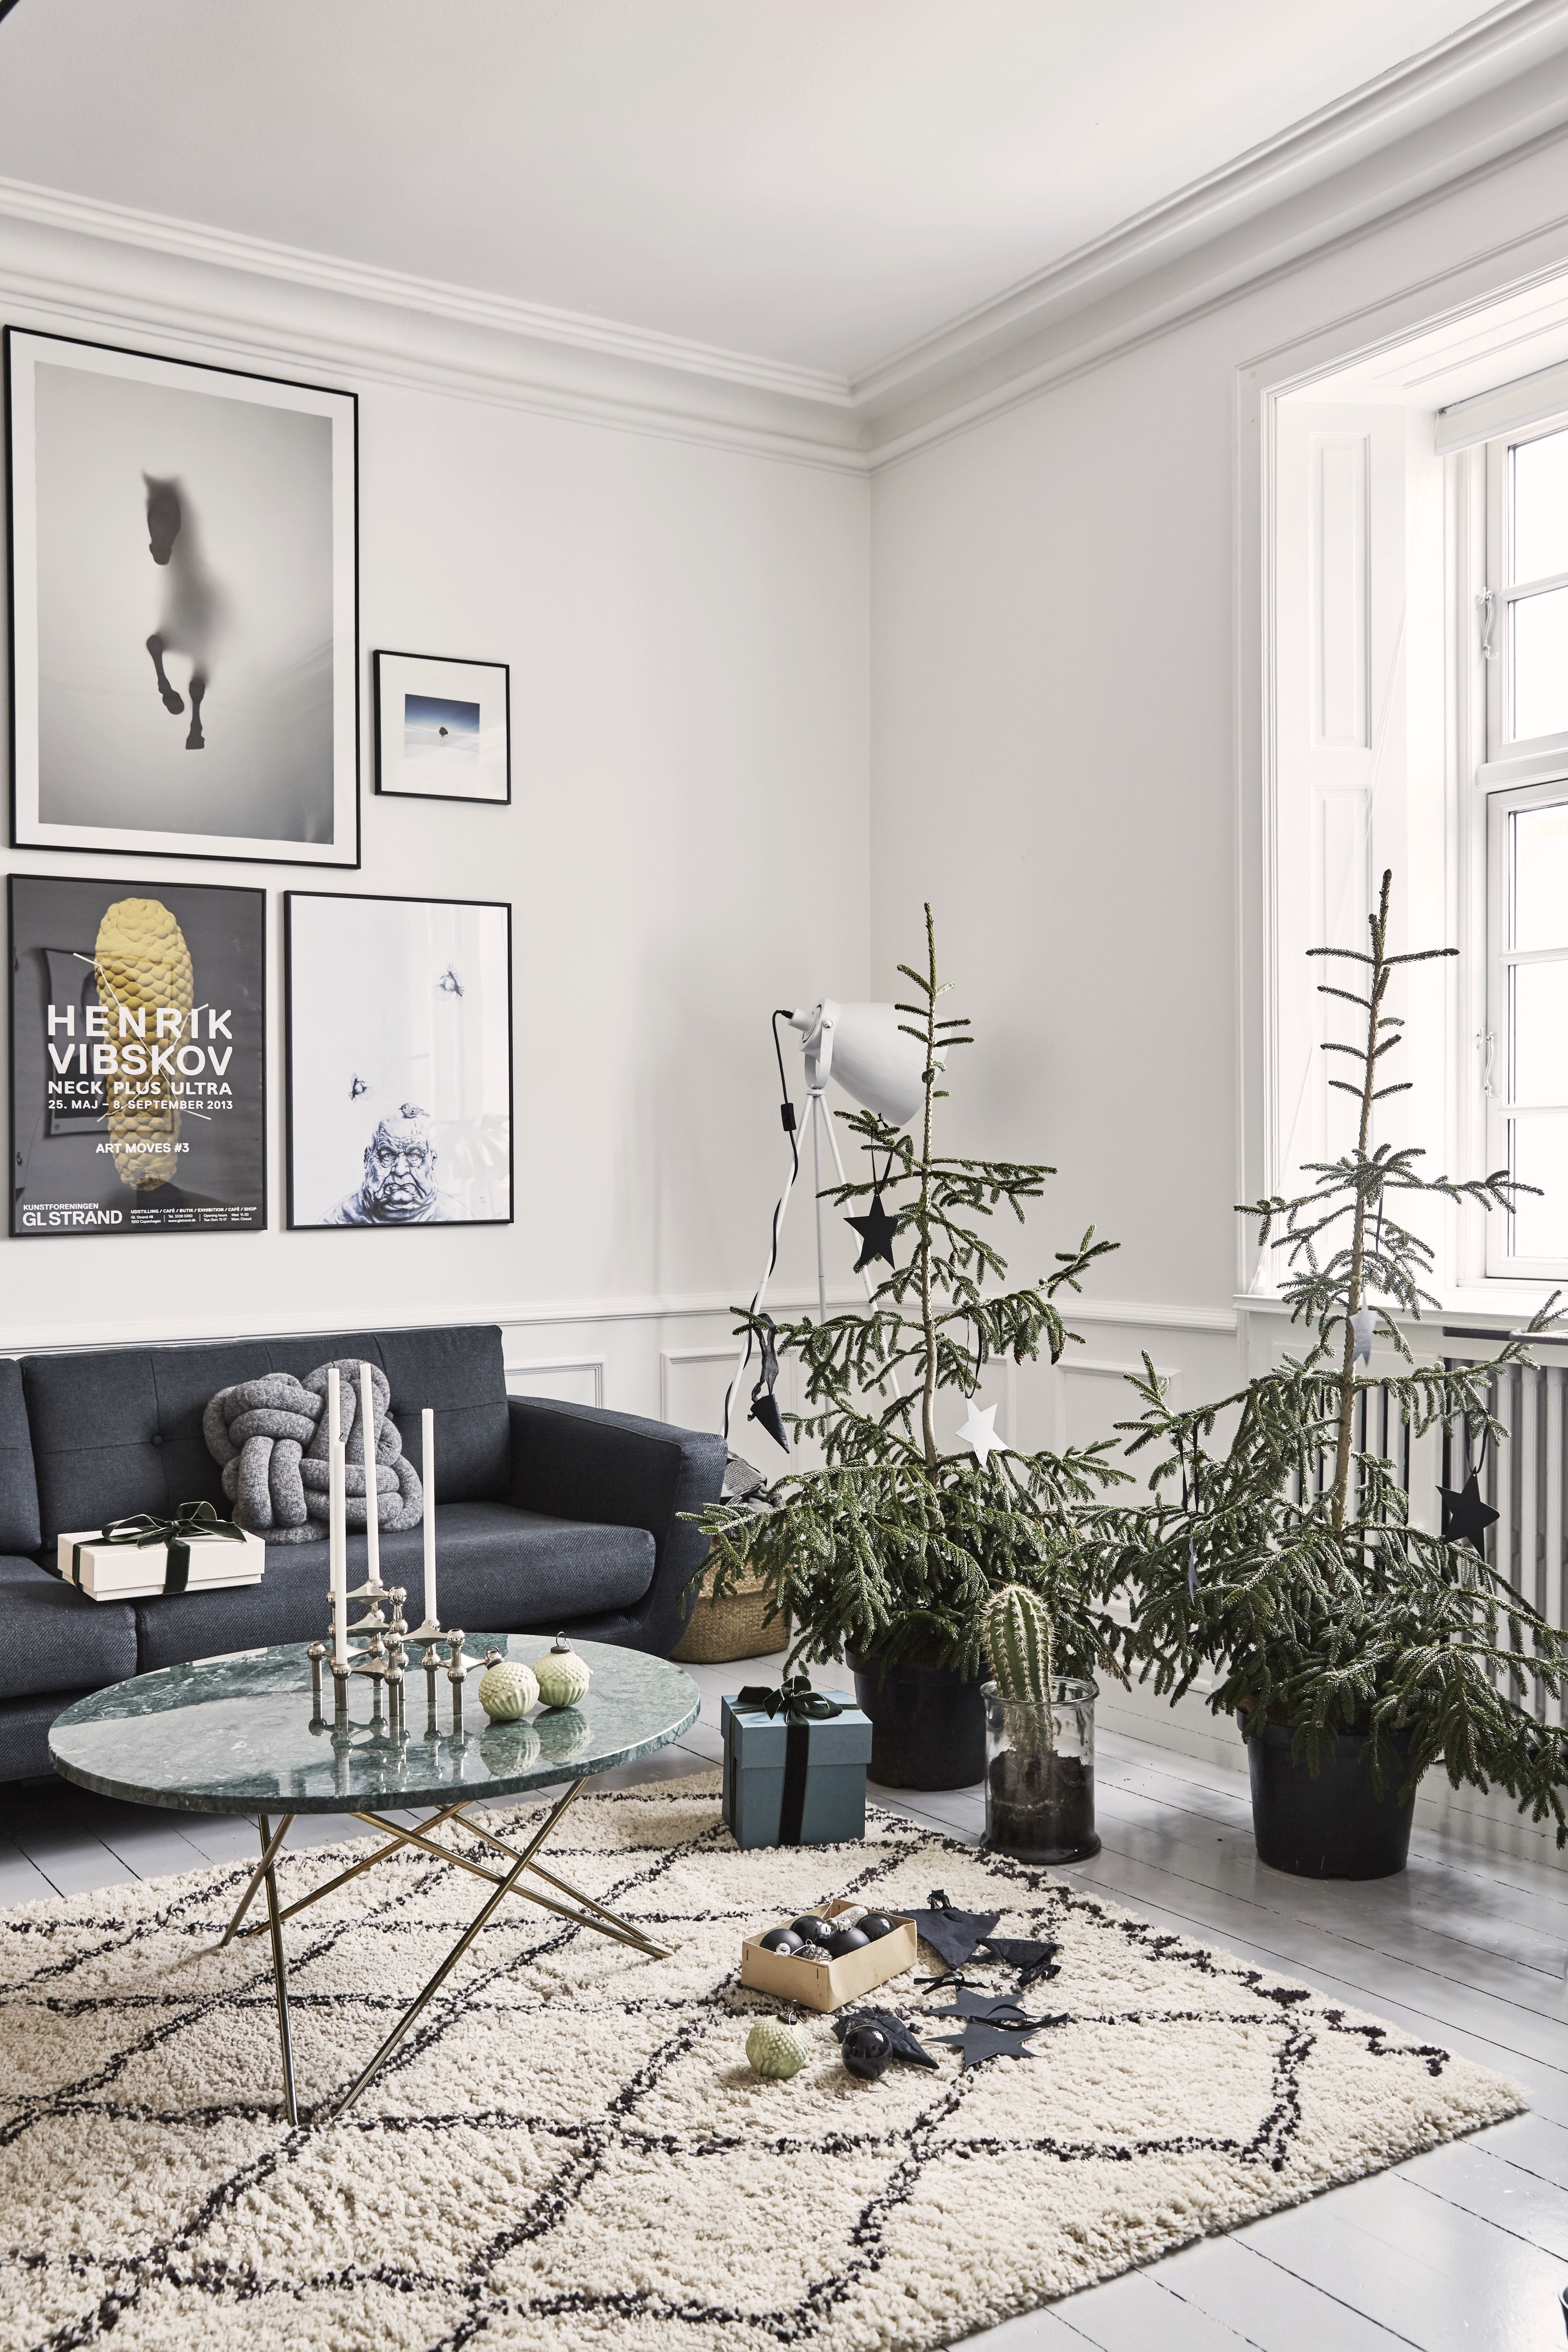 A laid-back approach to festive decoration is key in this Danish home